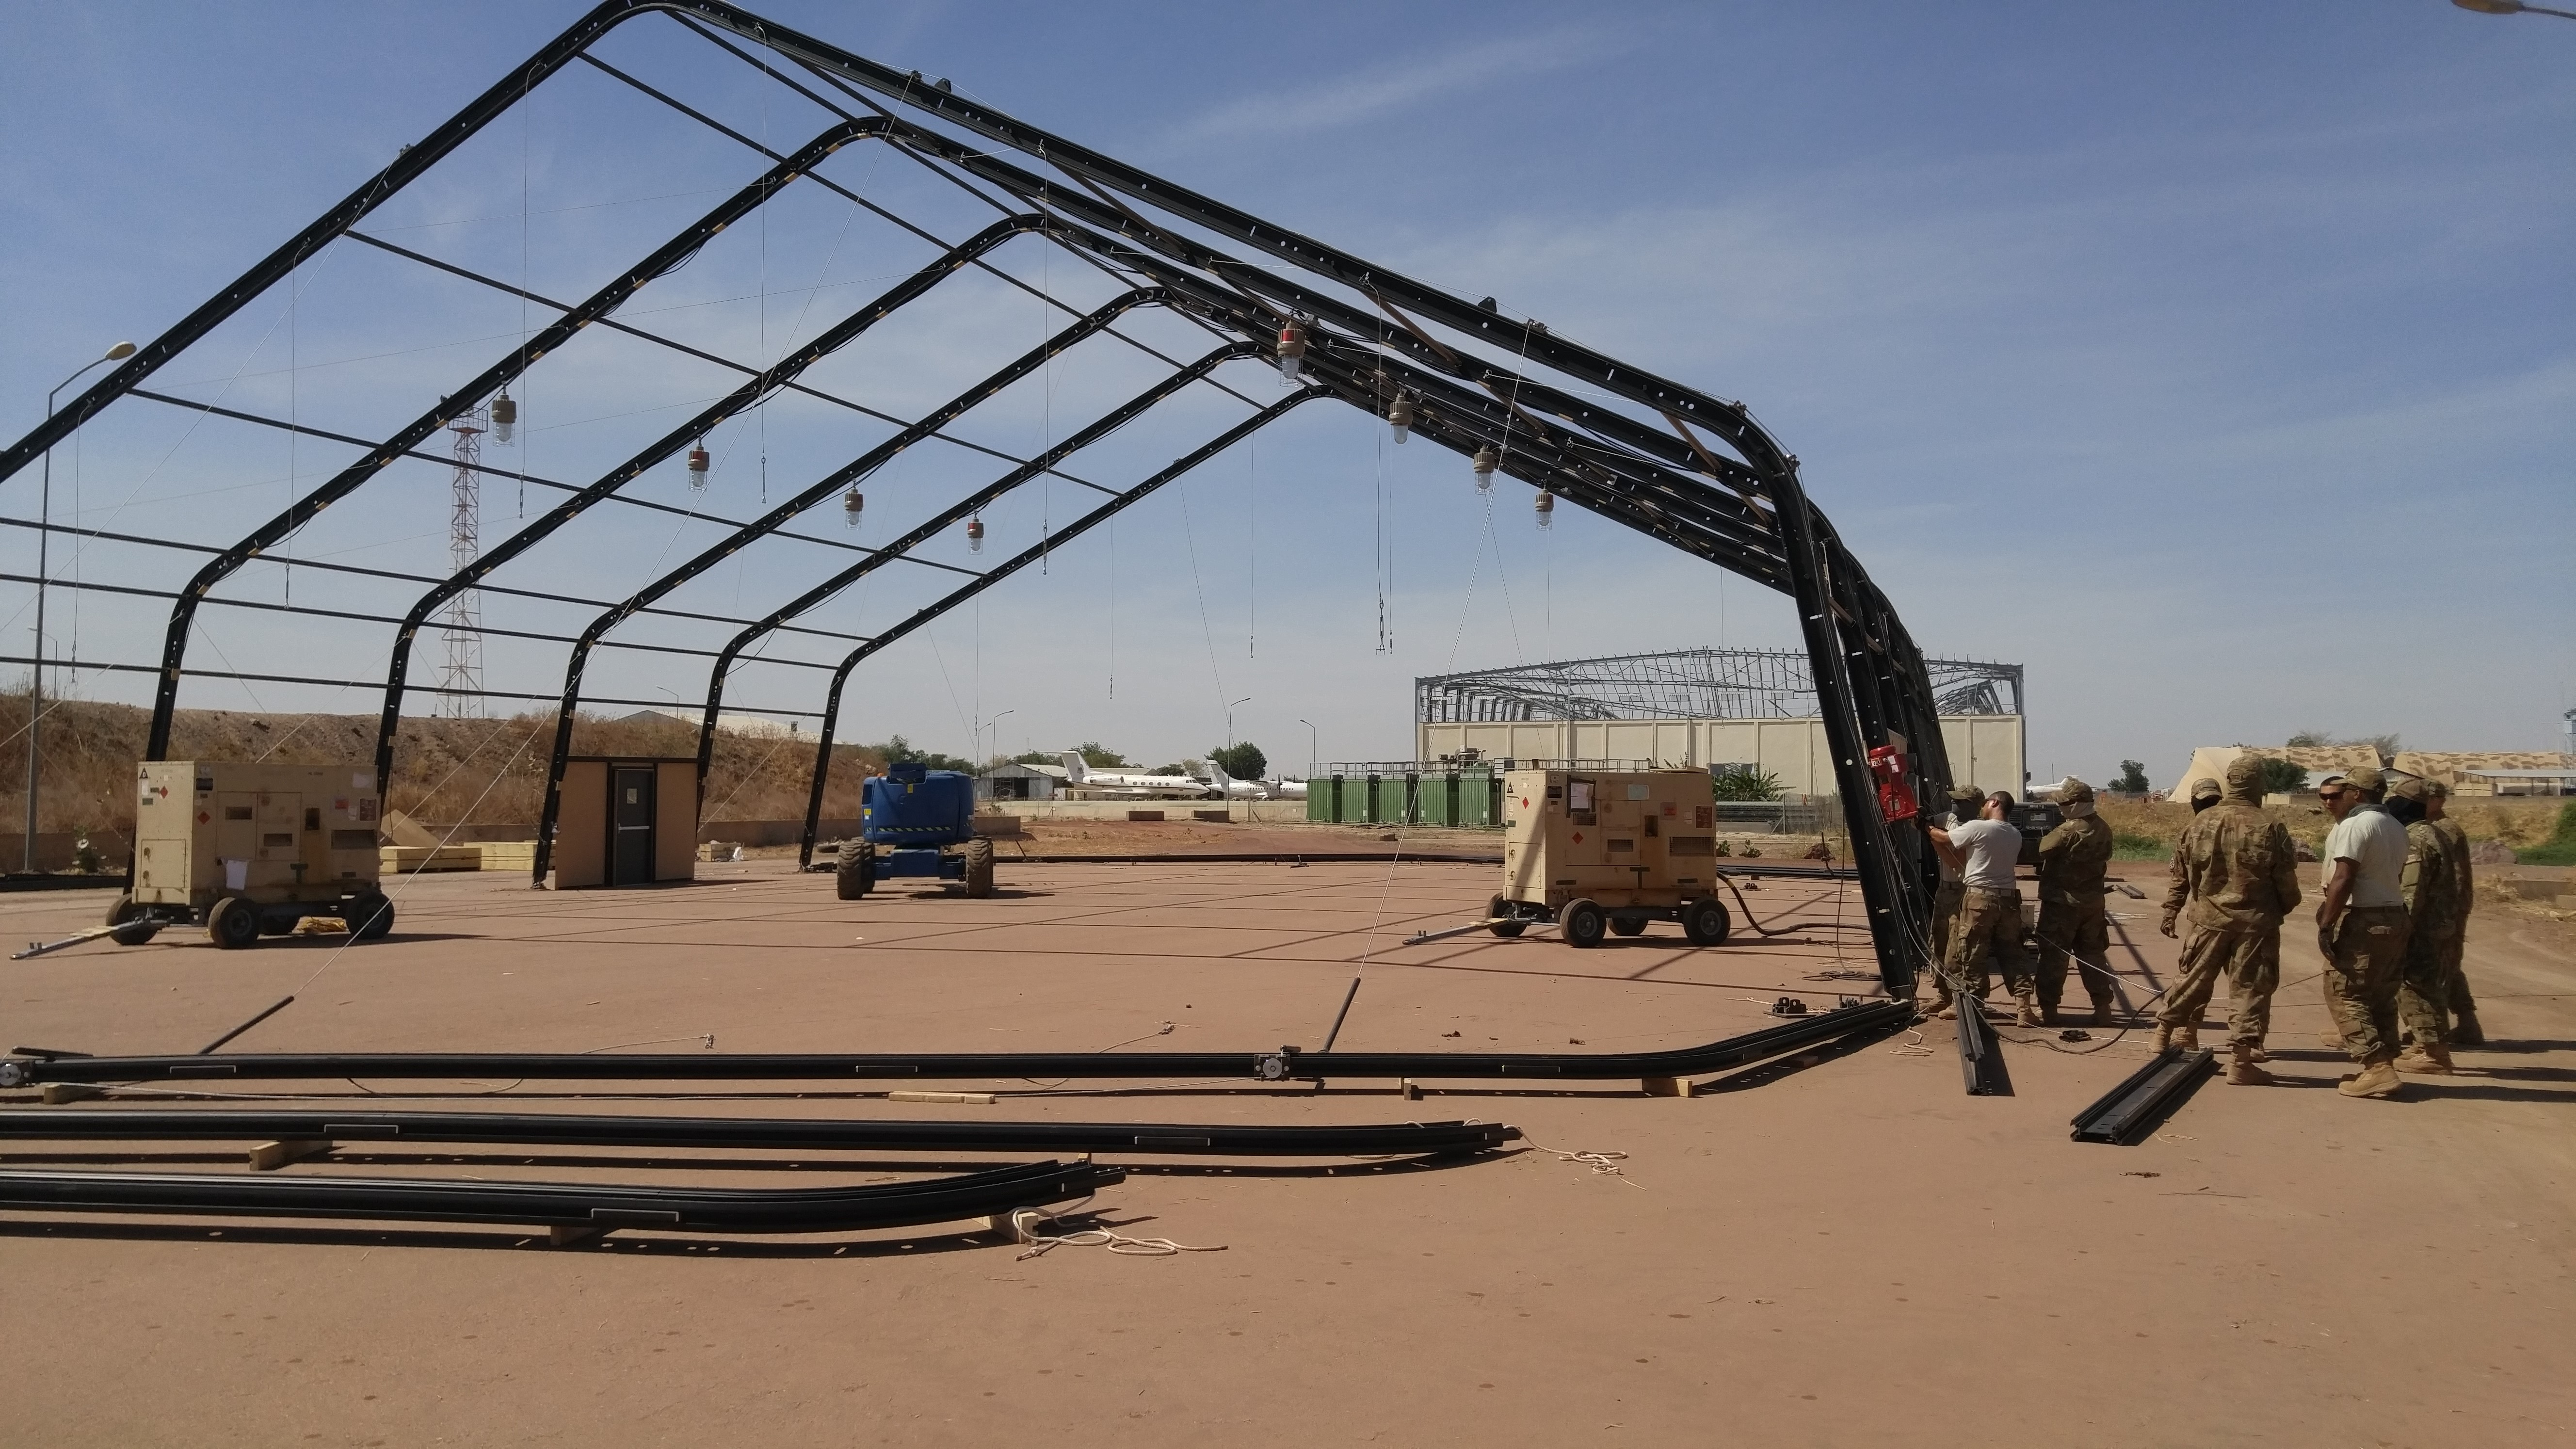 N'DJAMENA, Chad -- Airmen from 635th Material Maintenance Squadron, Holloman Air Force Base deployed to N'Djamena on Jan. 7, 2018, to assist the Chadian Air Force to erect providing aircraft maintenance shelters and maintenance training for their critical aircraft. This effort was initiated due to a large-scale wind storm last summer that destroyed many aircraft and maintenance shelters located in the main airfield in N'Djamena. (U.S. Air Force photo)